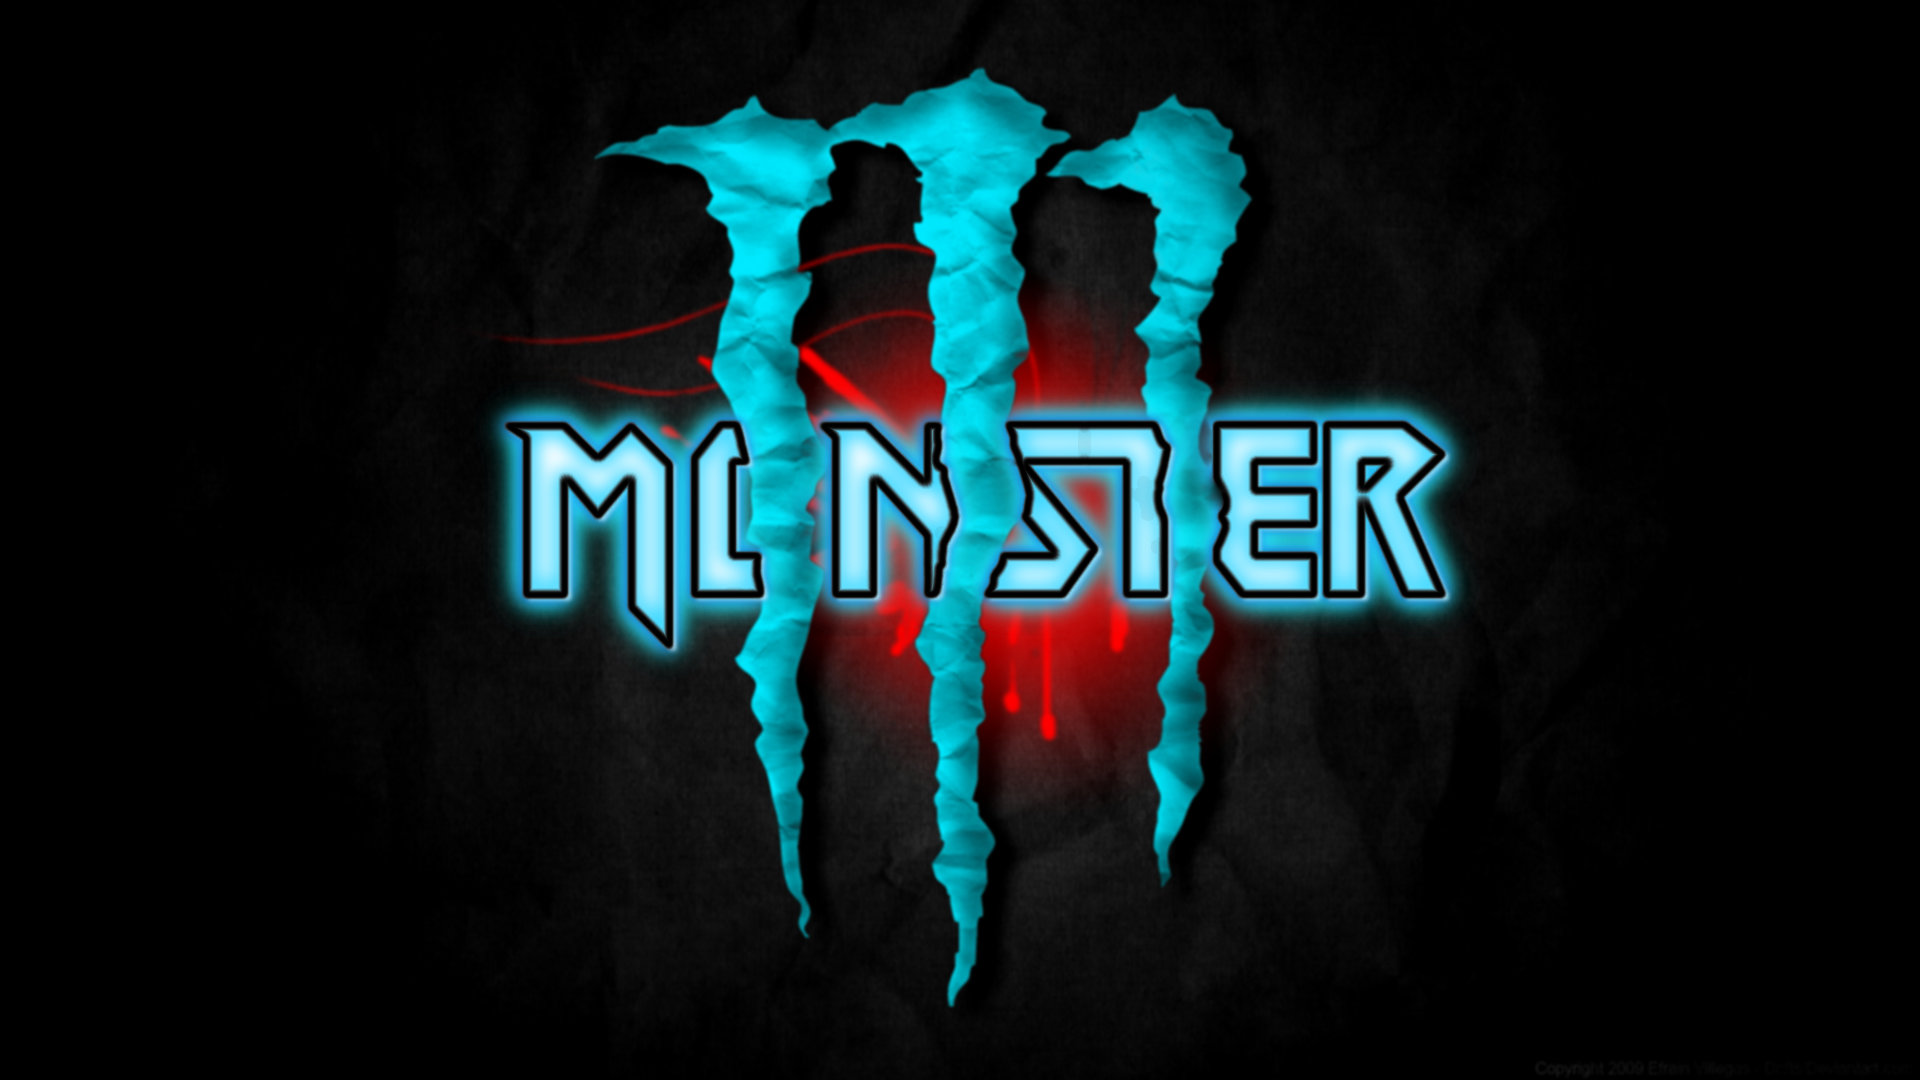 Download hd 1920x1080 Monster Energy desktop wallpaper ID:254284 for free